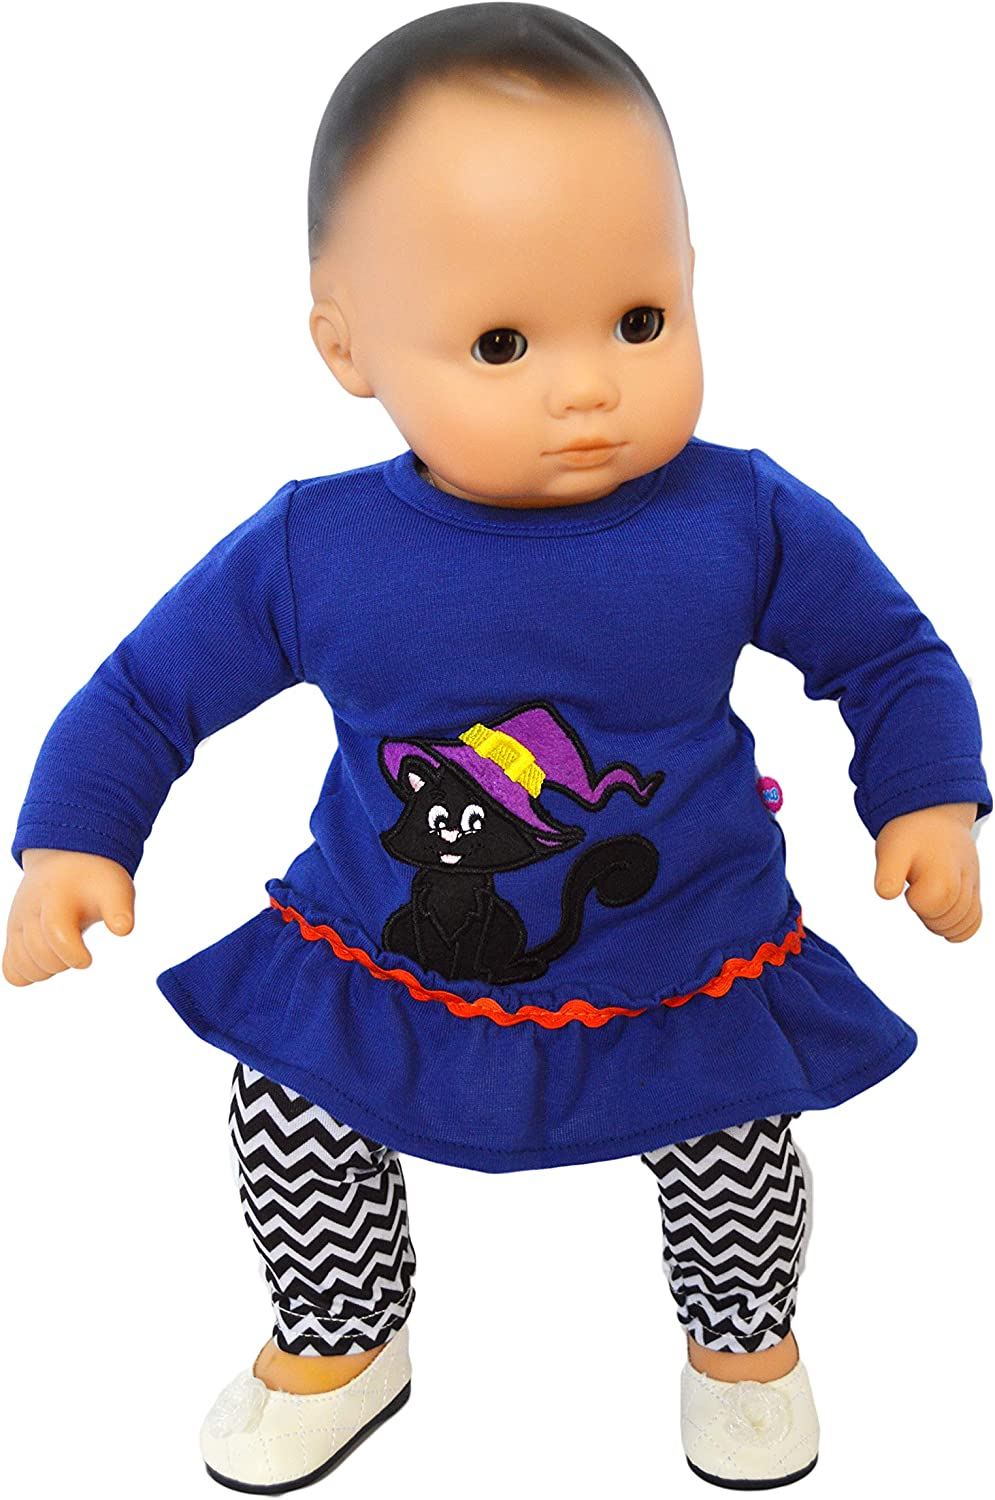 Brittanys Spooky Kitten Outfit Compatible with Baby Dolls 15 Inch Doll Clothes